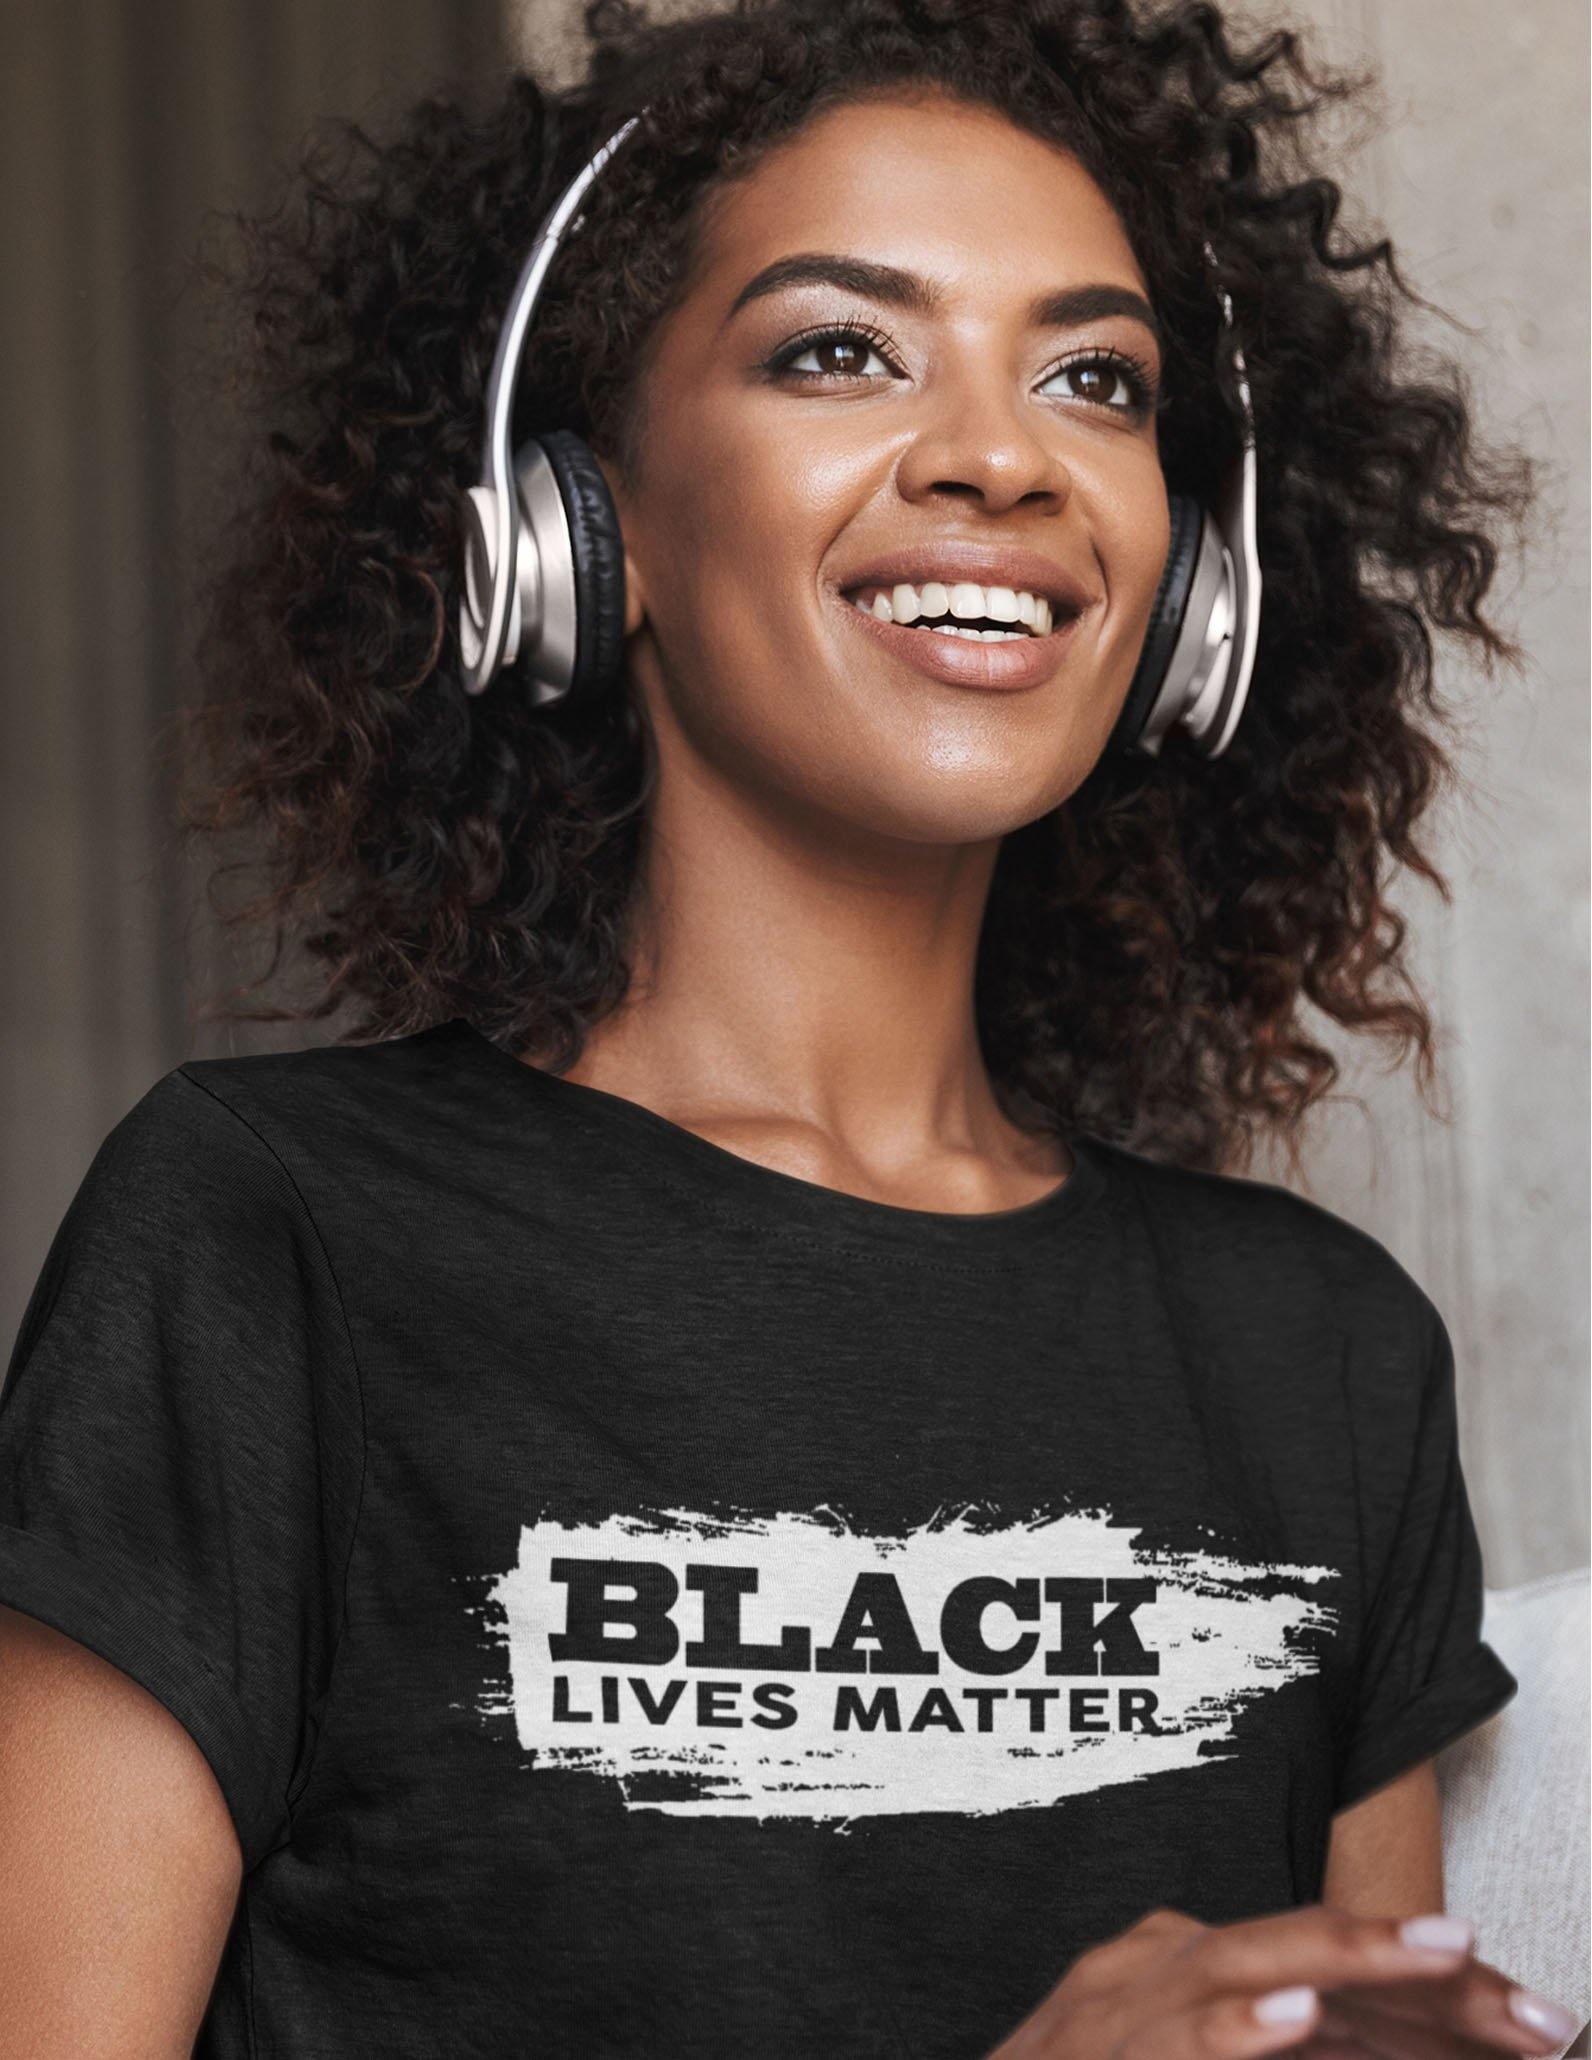 Black Lives Matter Shirt, Mens Black Lives Matter shirt, Activist BLM Shirt